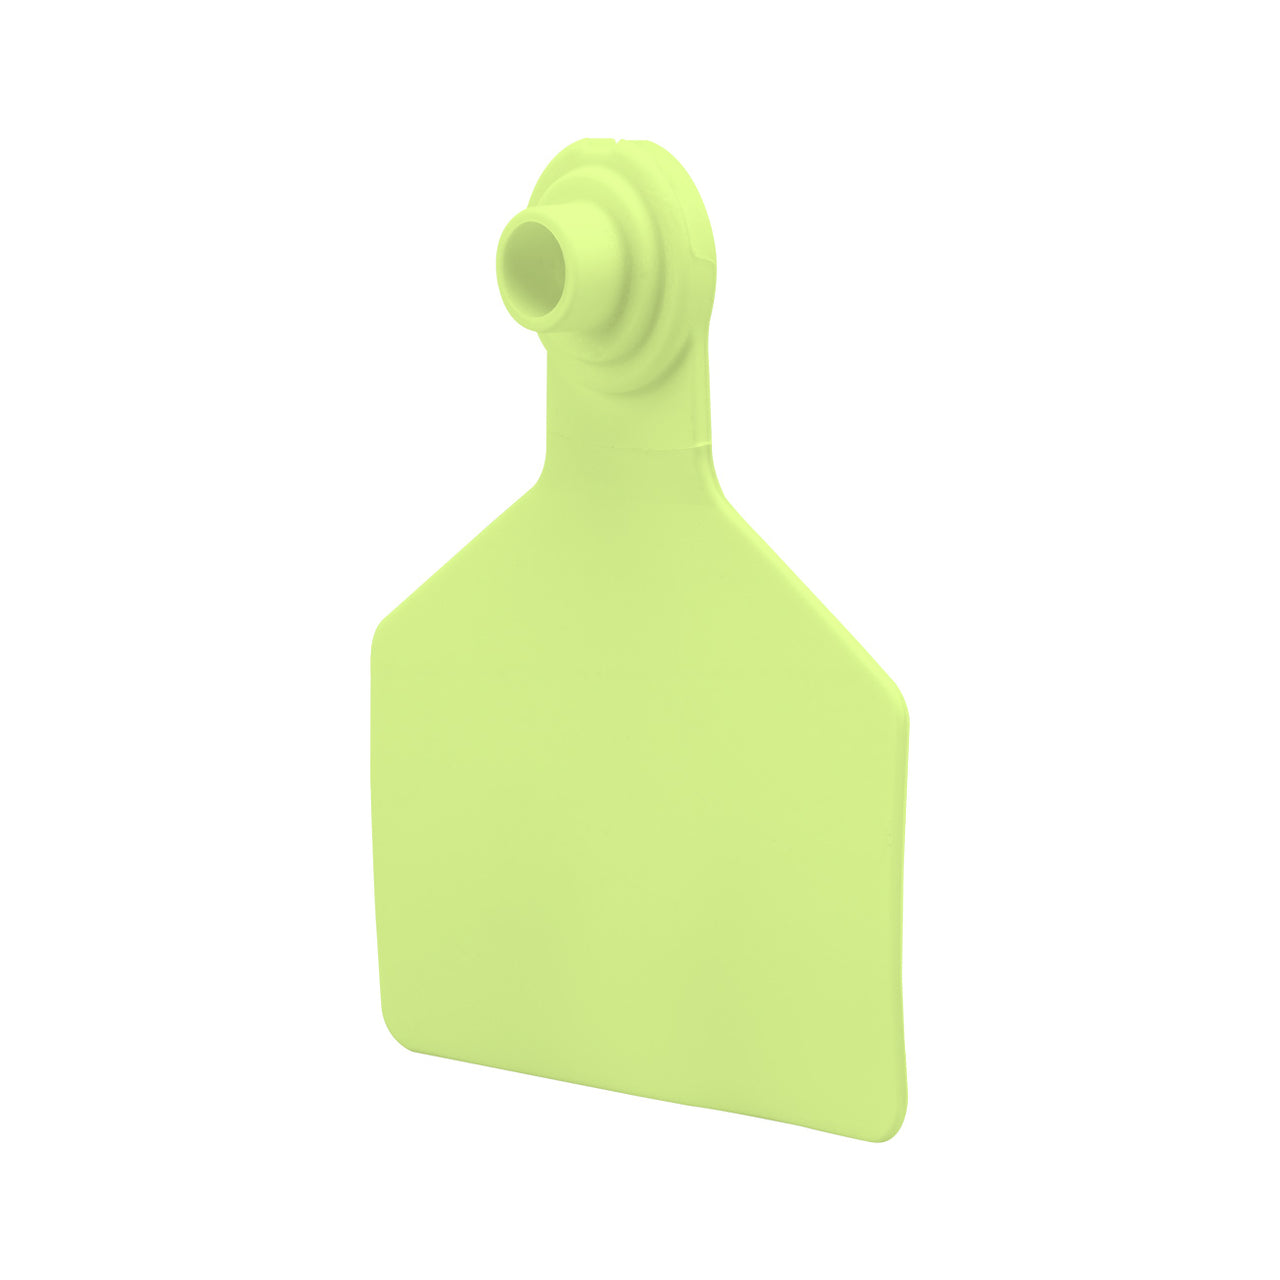 Z Tags Z2 2 Piece Large Blank (Light Green) 25 Pack - 2 Piece Large Blank Tag Z Tags - Canada